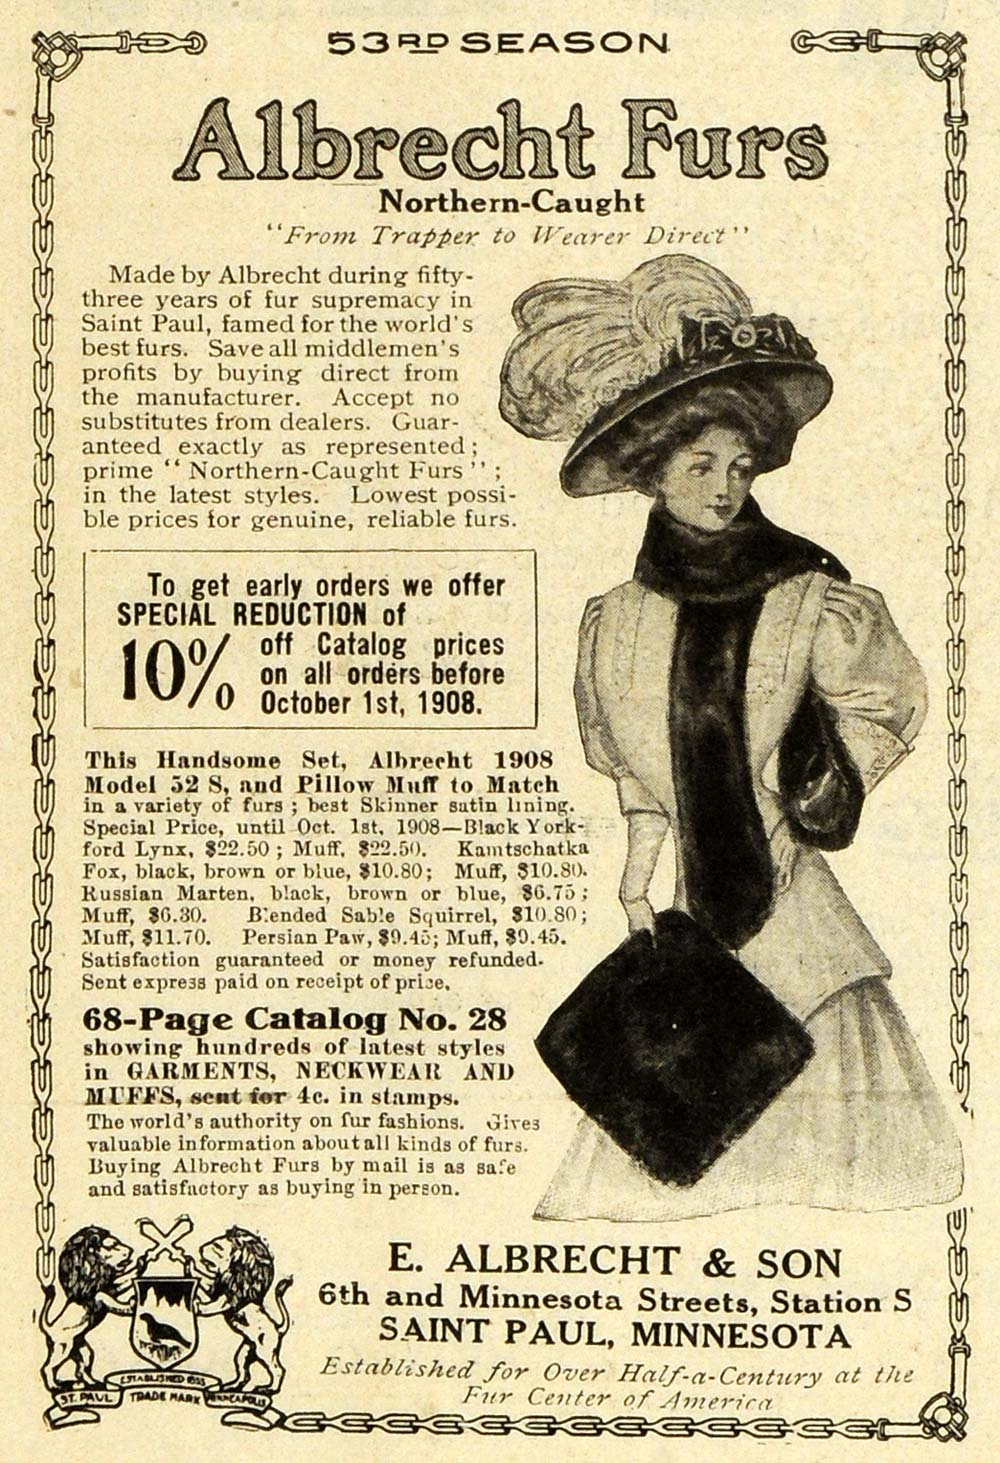 1908 Ad Albrecht Fashion Northern Caught Furs Clothing Accessories Trappers EM2